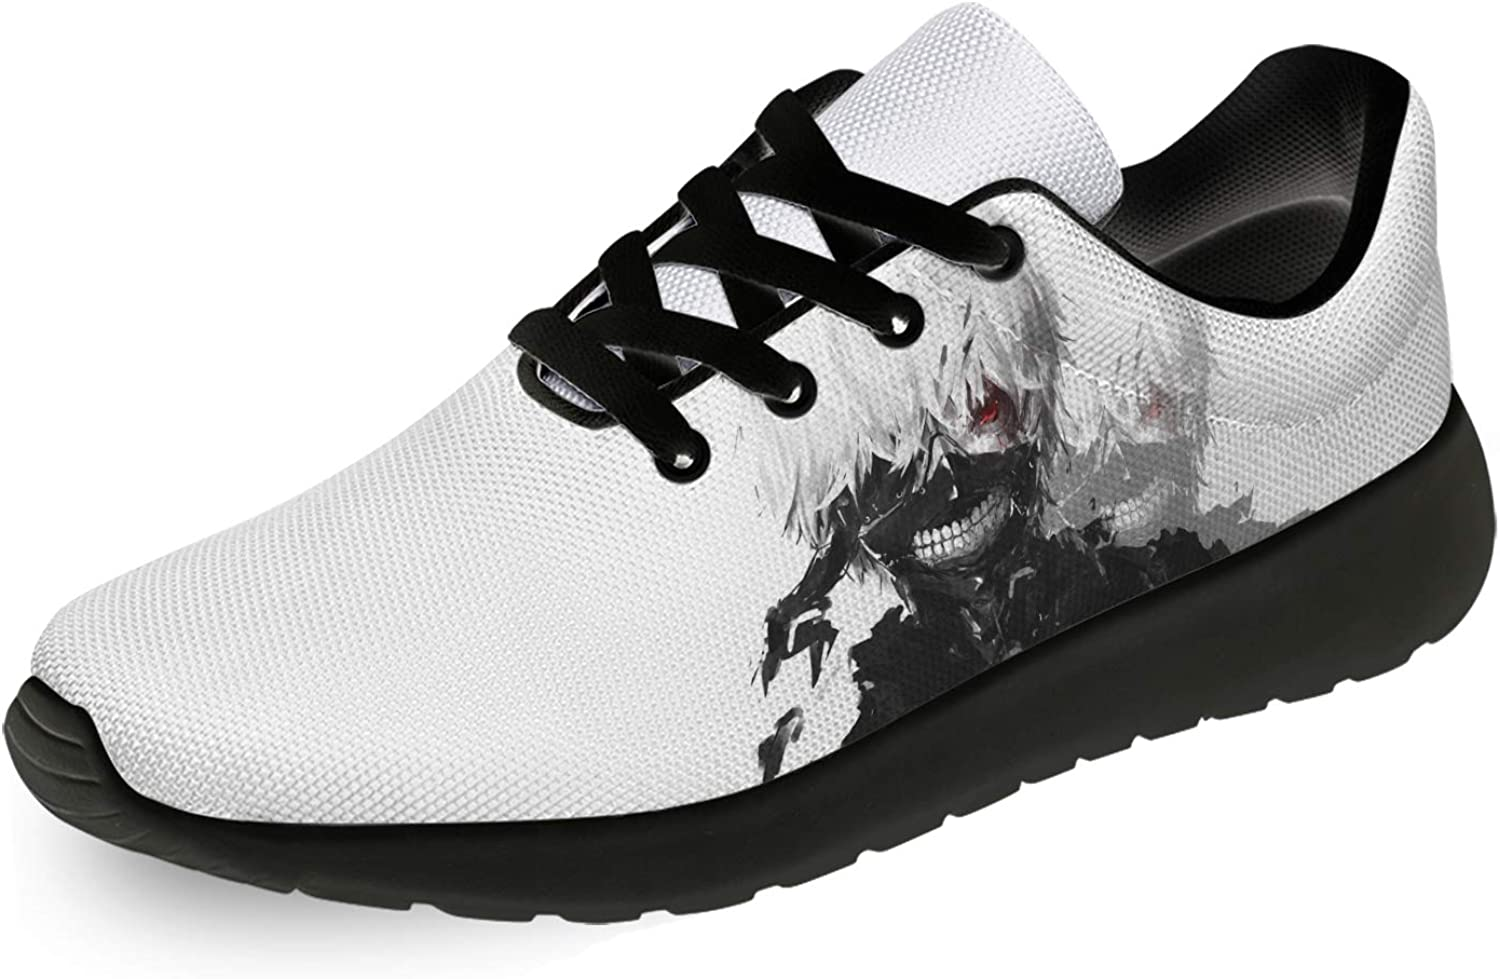 Outstanding ADIGOW Japanese Anime Ranking TOP14 Shoes for Men Mesh Custom Lace-up Women Ro